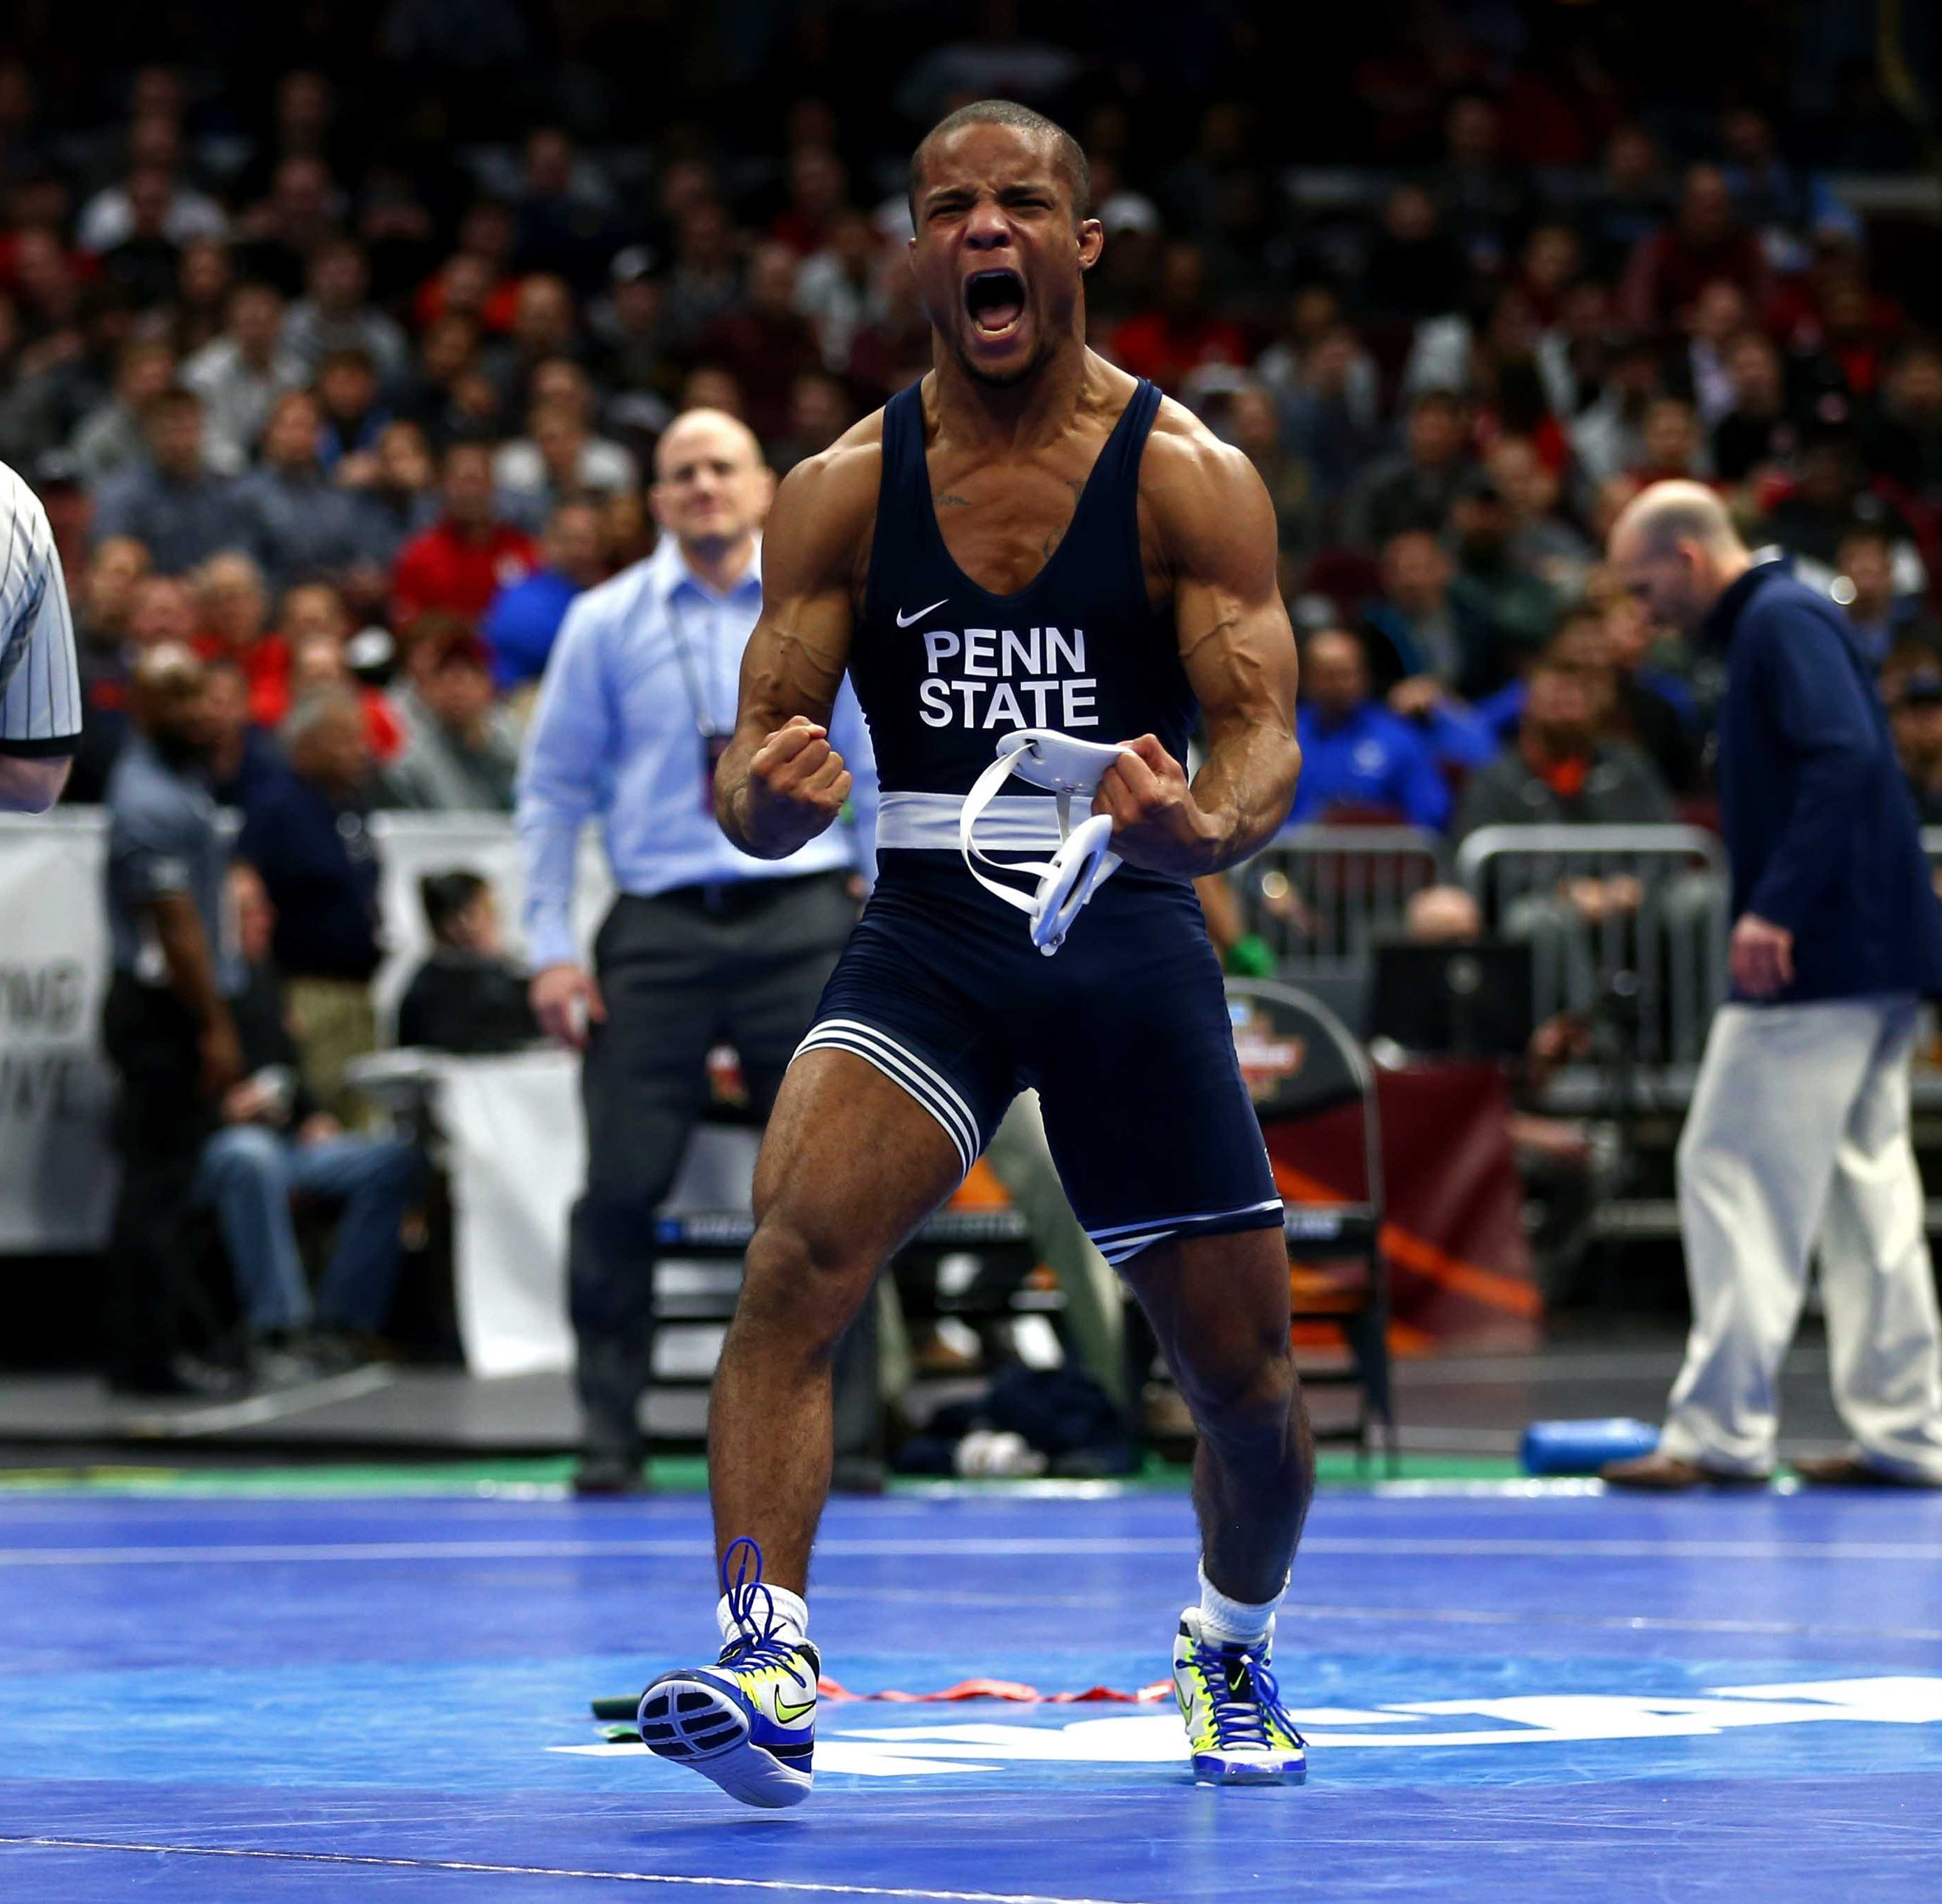 Penn State wrestling closes in on history at NCAA Championships: What you need to know